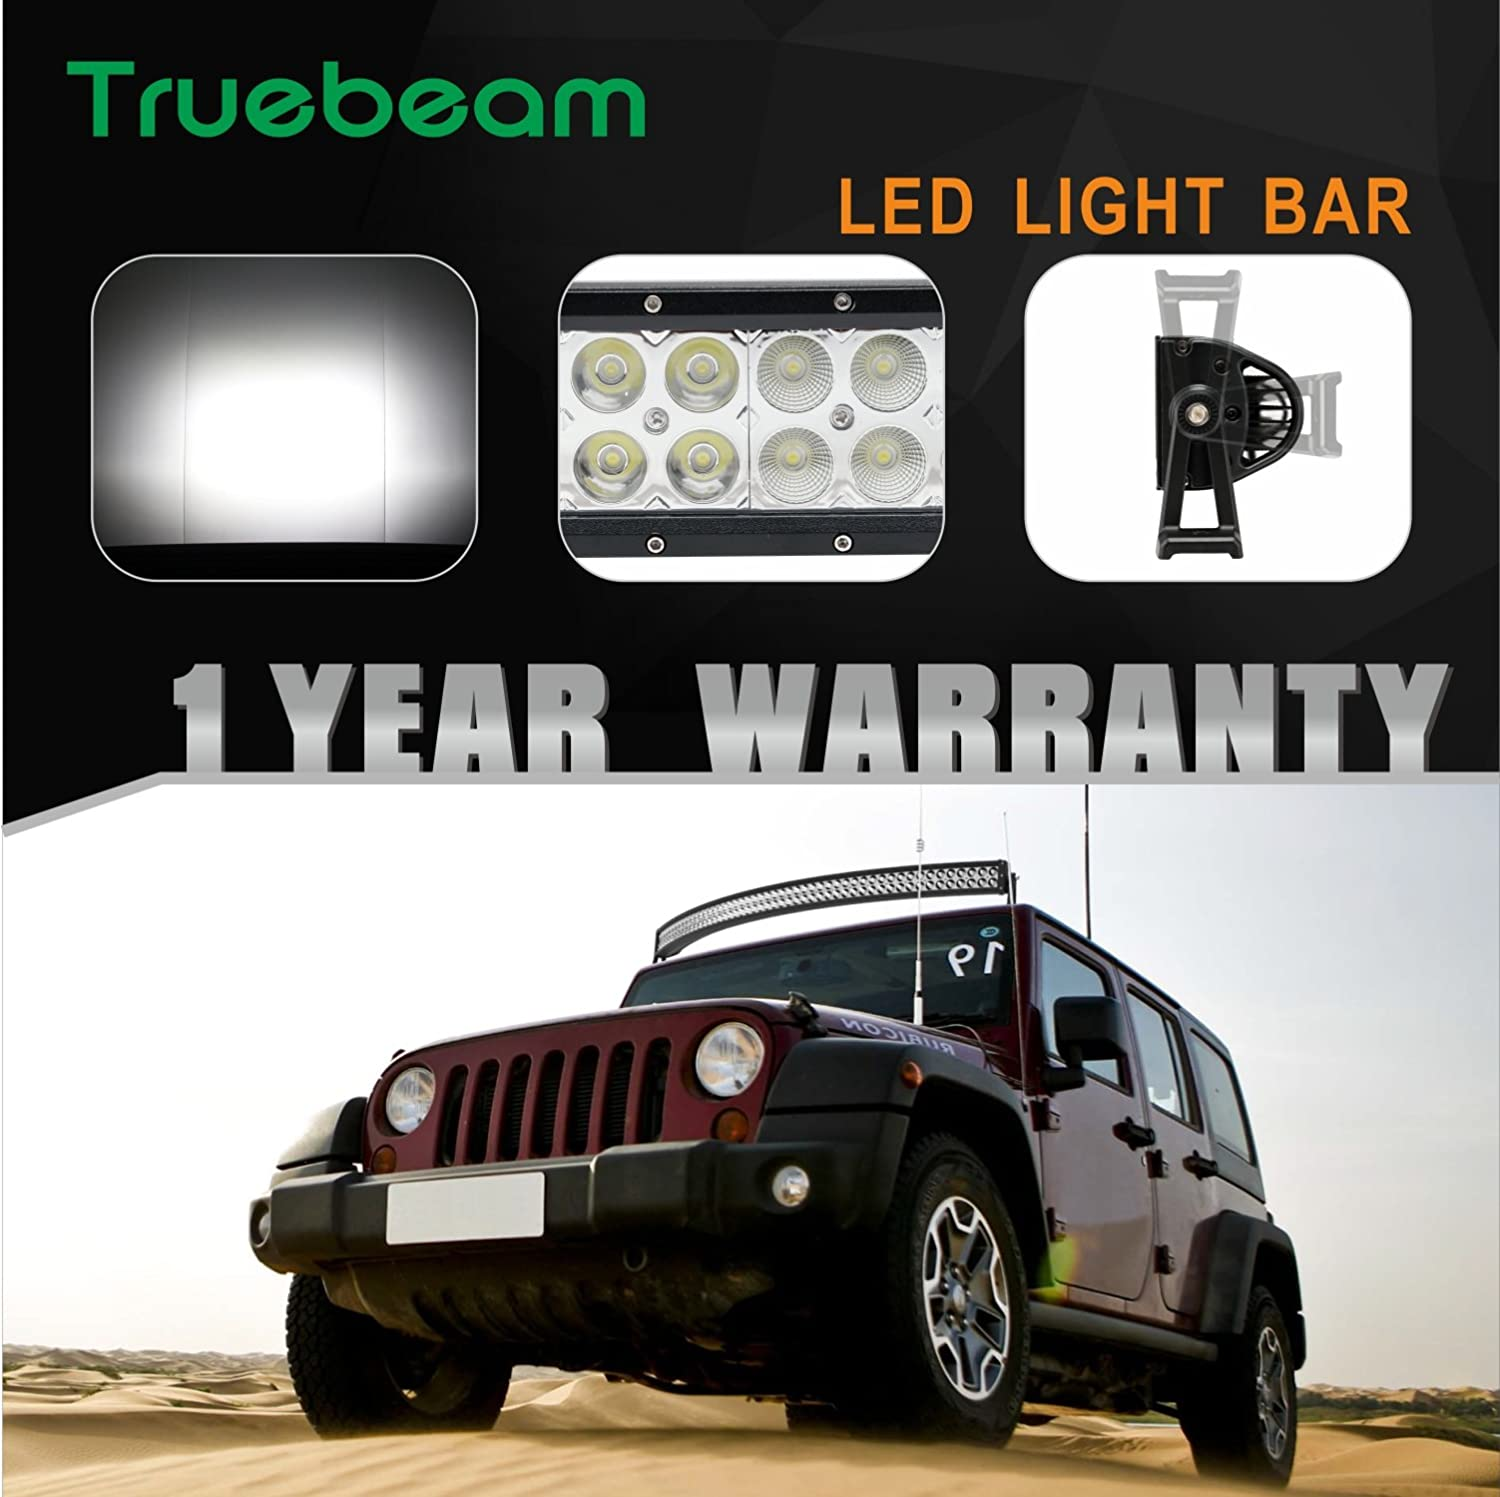 Truebeam 26 Inch 144w Flood Spot Combo Beam Curved Led Light Bar Wiring Harness Diagram Amazoncom Mictuning With Free And 2pcs 27w 4inch Work Mounts For Truck